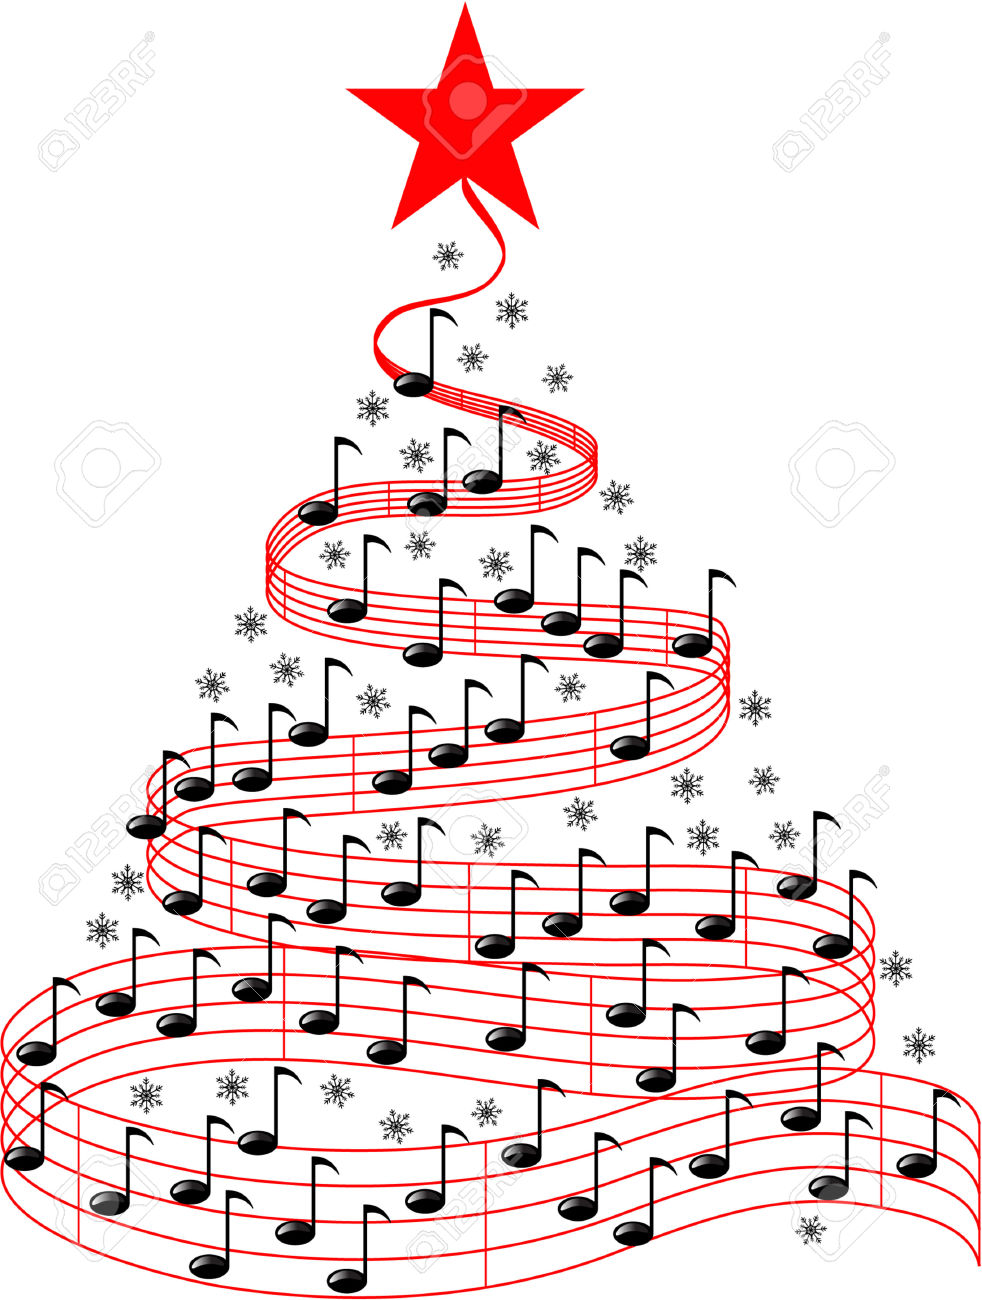 hight resolution of christmas music notes clipart christmas music free clipart